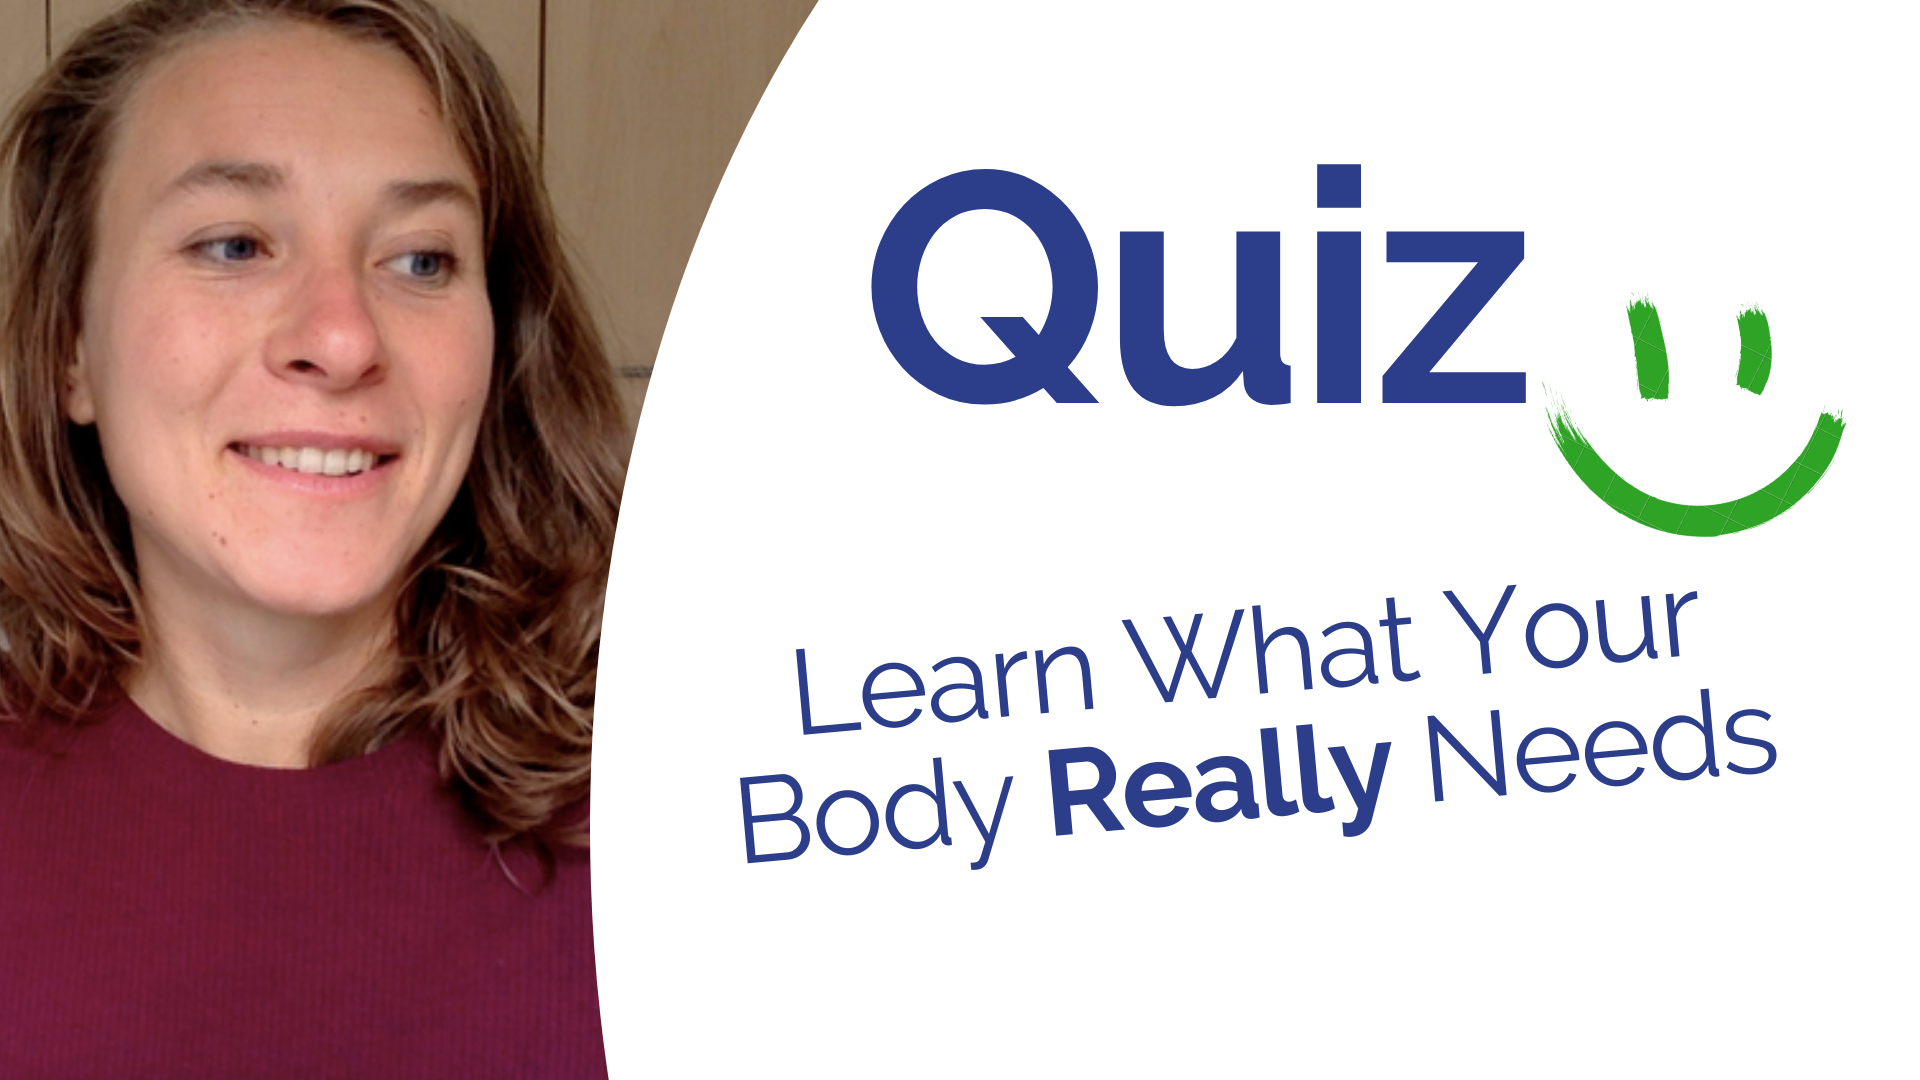 Quiz, Learn what your body really needs